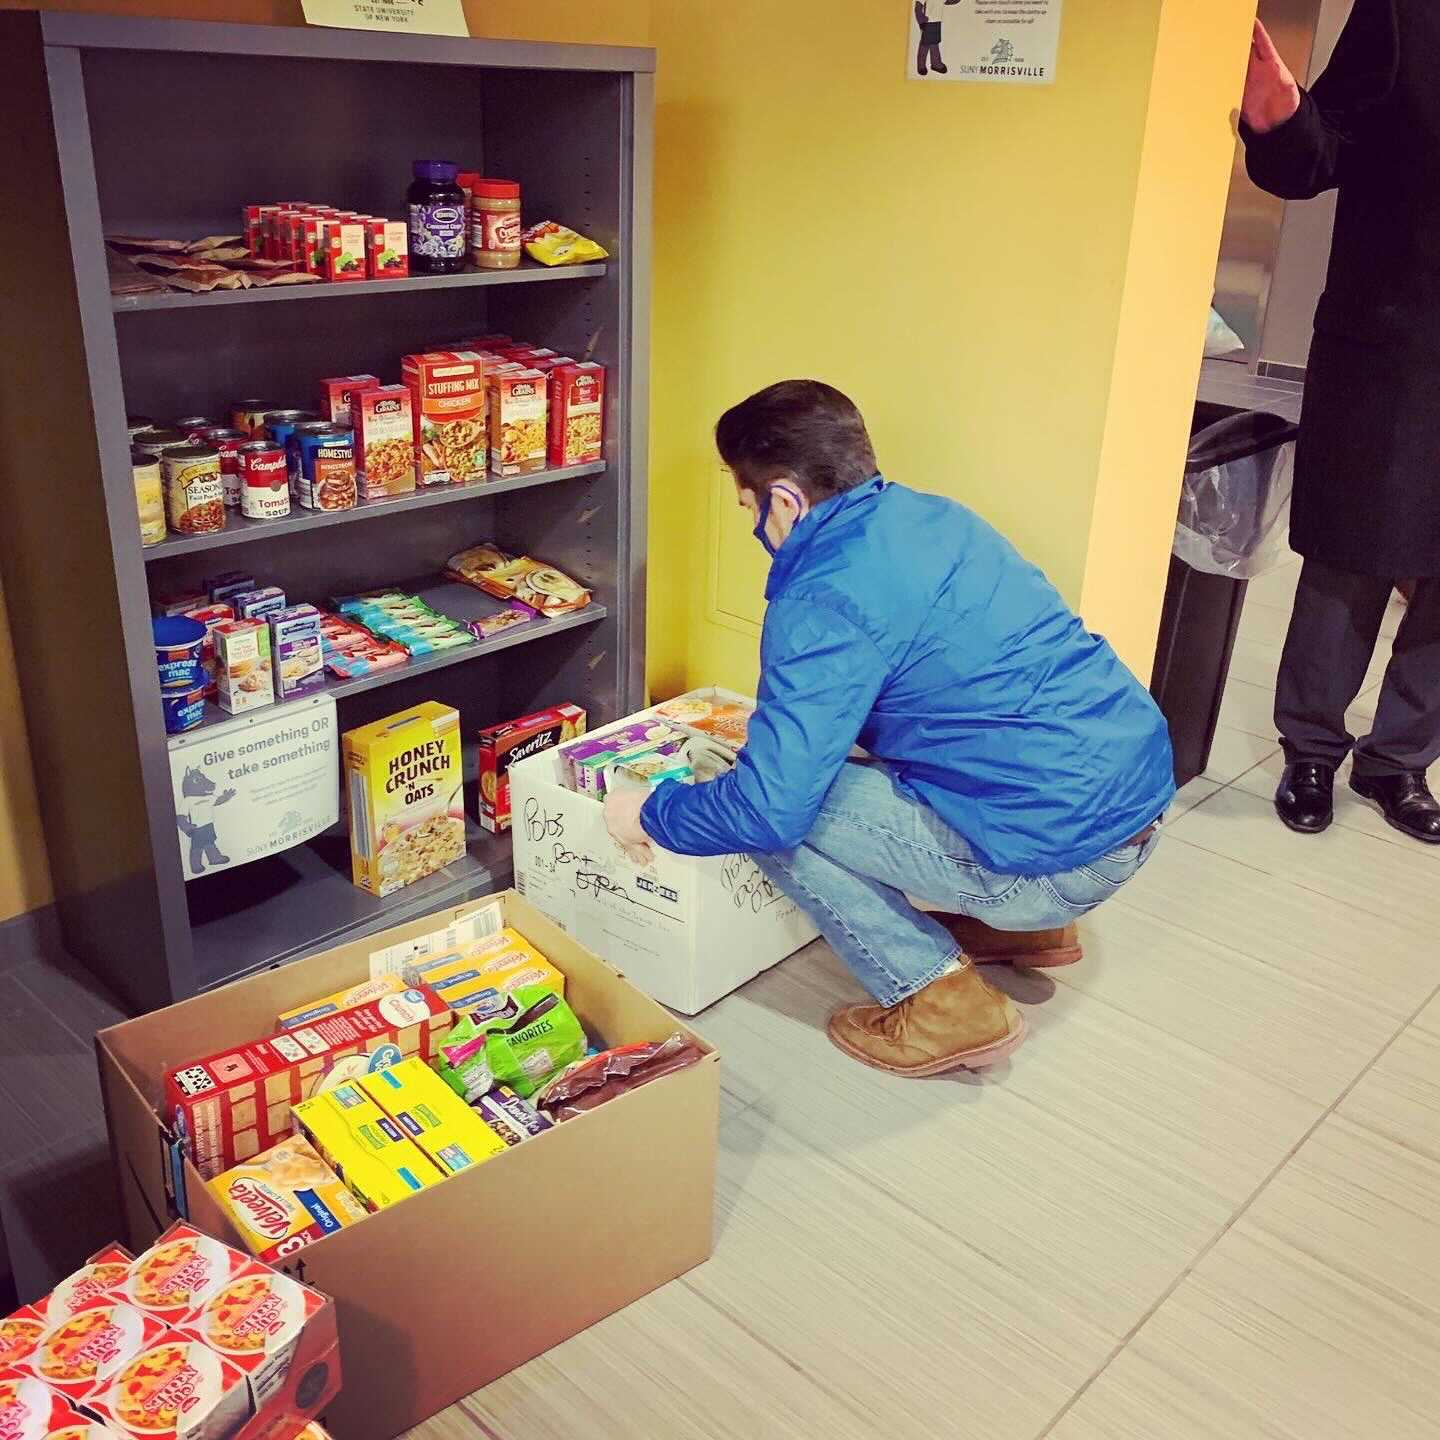 State University of New York Chancellor Jim Malatras visits SUNY Morrisville's campus food pantry and helps stock its shelves.